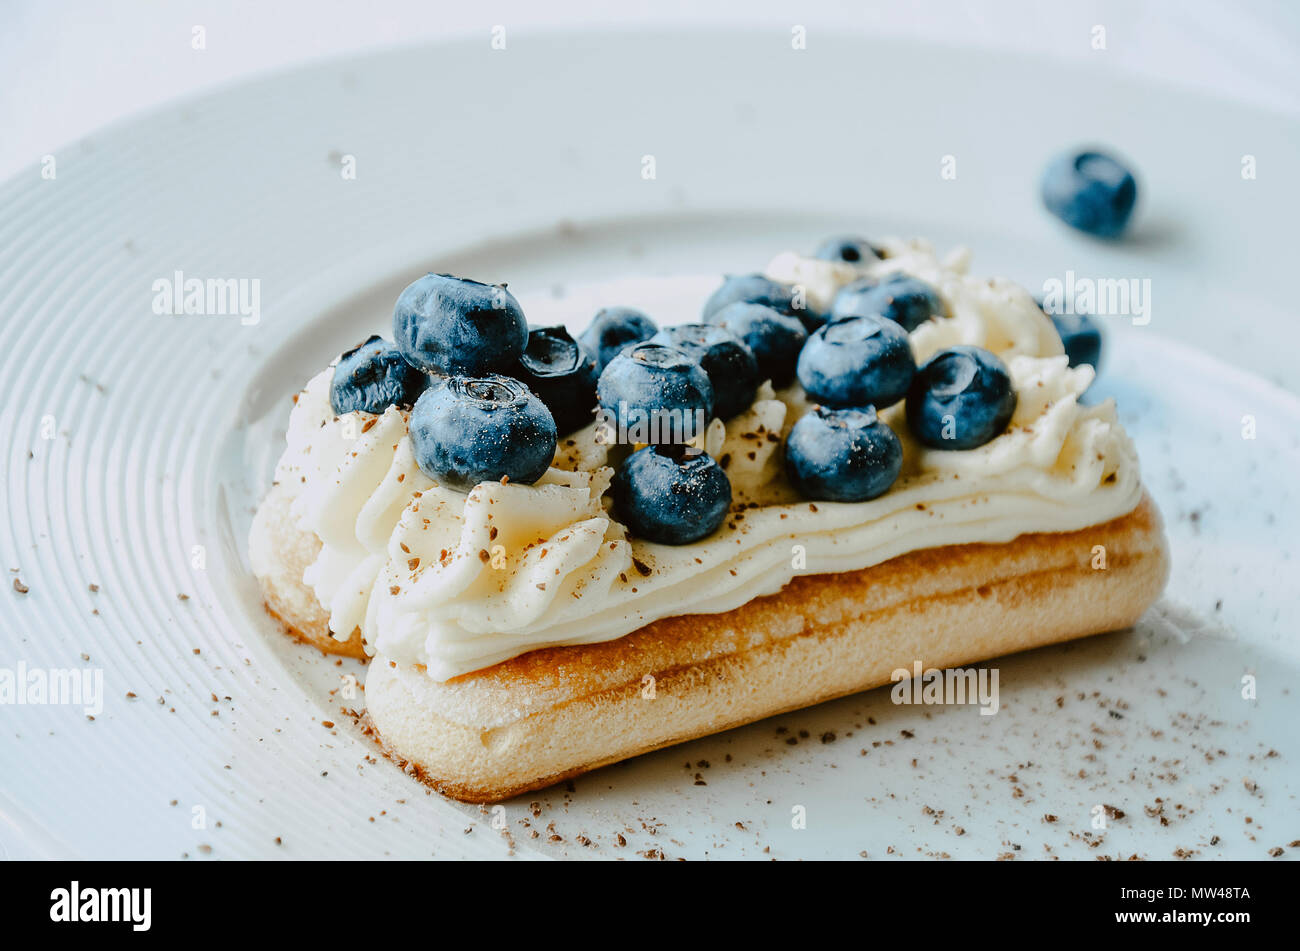 Nontraditional blueberry tiramisu with fresh berries. White background, copy space. - Stock Image